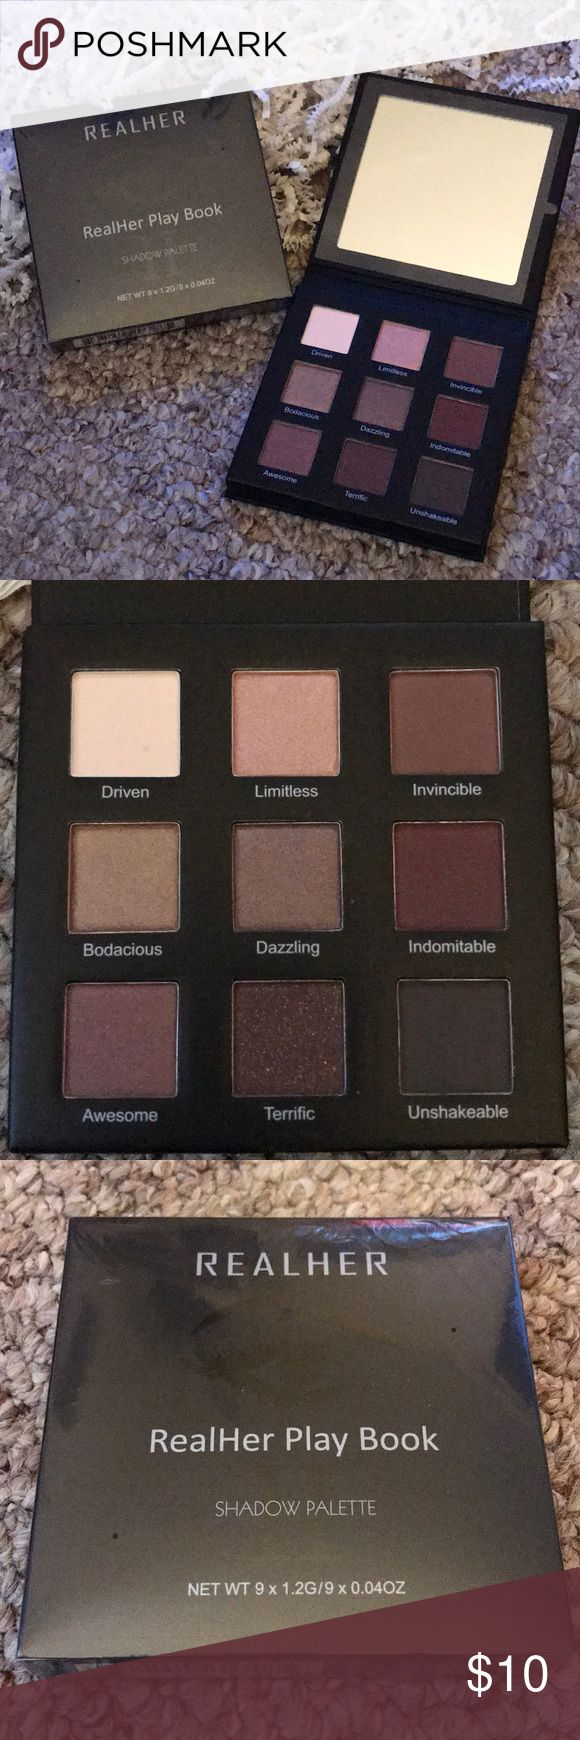 FabFitFun RealHer Play Book Eyeshadow Pallate RealHer eyeshadow palette from my FabFitFun Editors Box, Winter 2017. It's brand new, still sealed in plastic. The photo of the open palette is mine, I got one box as a gift after I purchased one for myself, so I have two palettes. I am selling the new and unopened one. Open to all reasonable offers. RealHer Makeup Eyeshadow